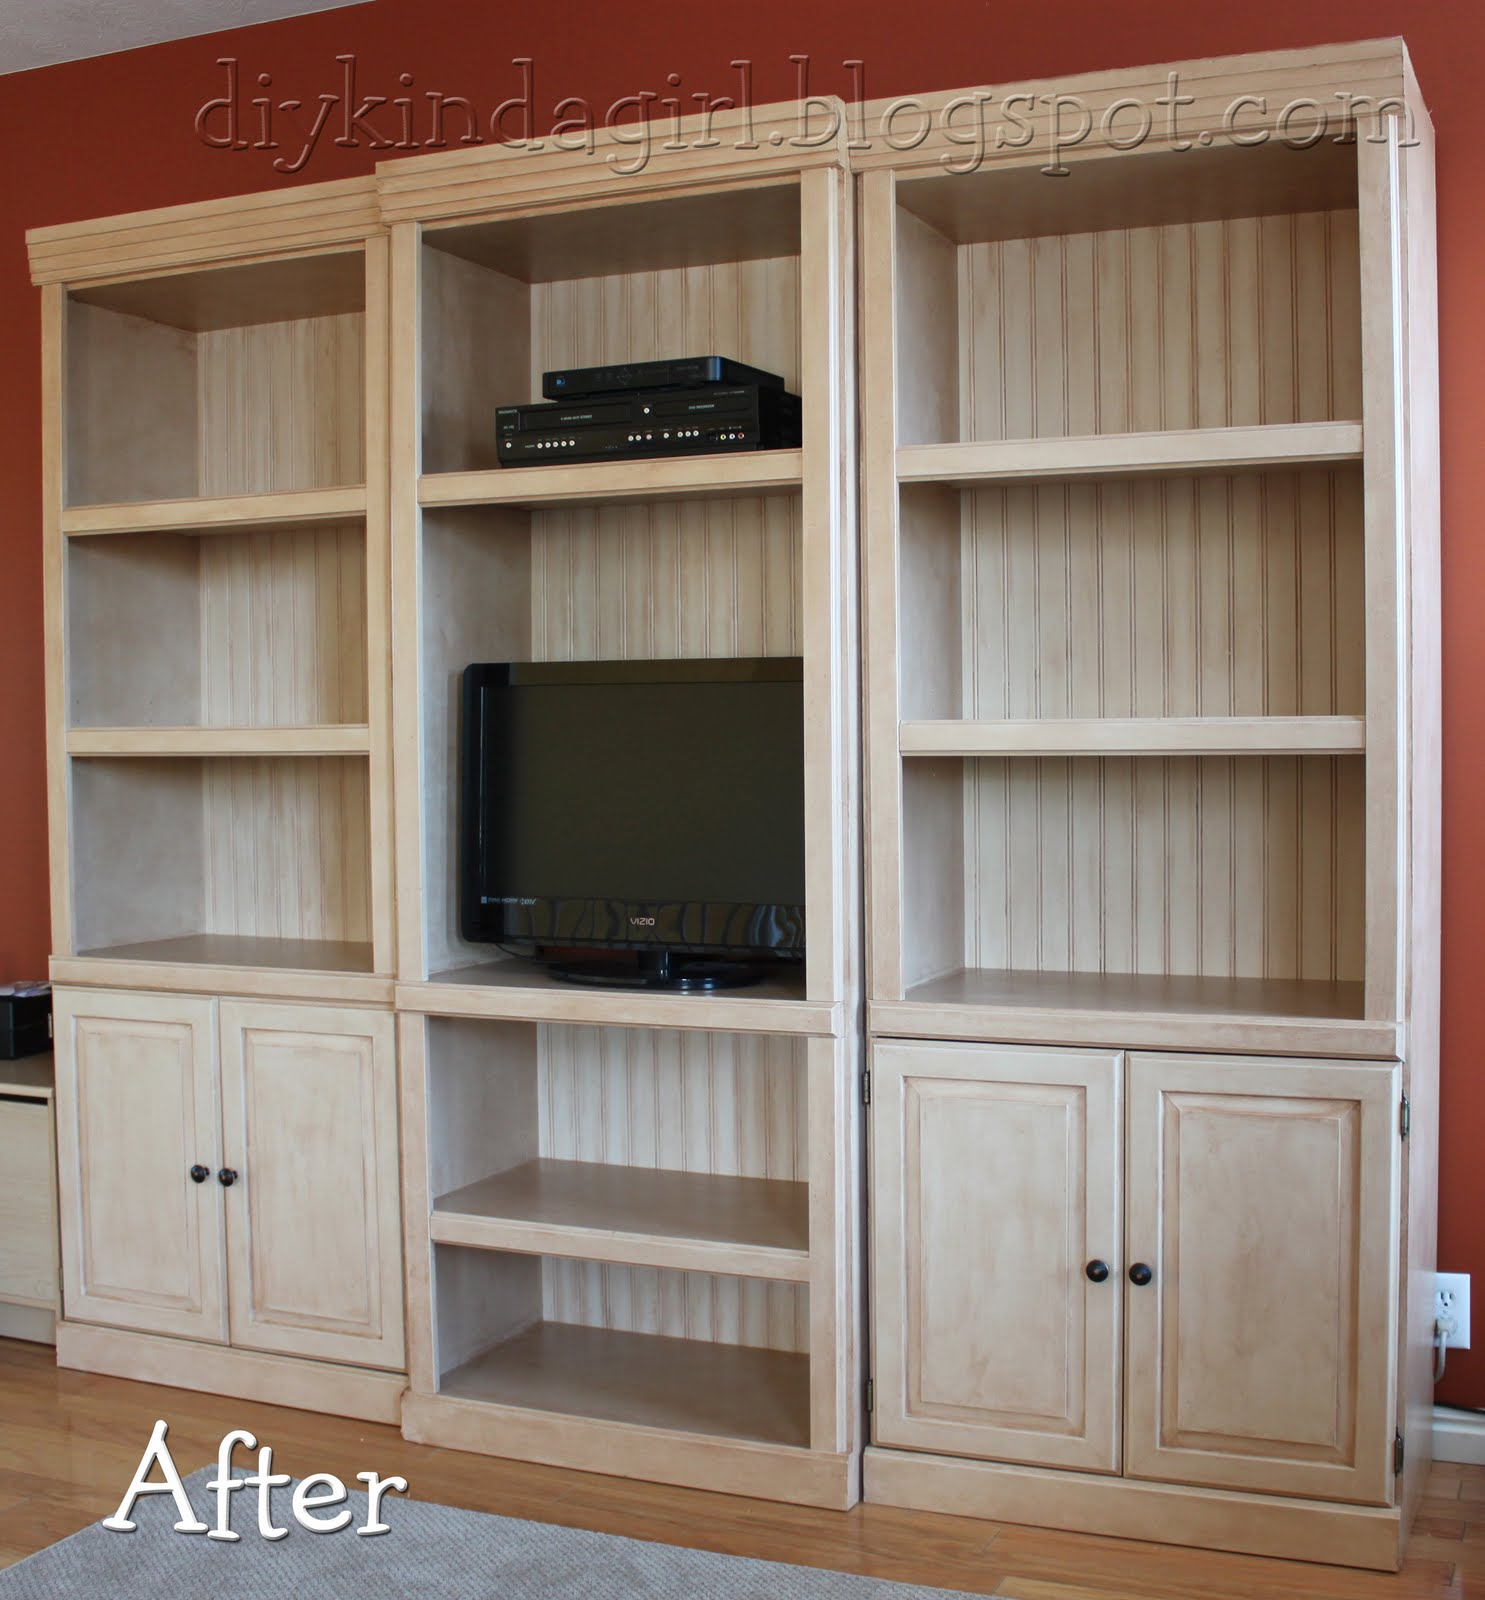 Diy kinda girl how to paint laminate spray stain cabinets el.